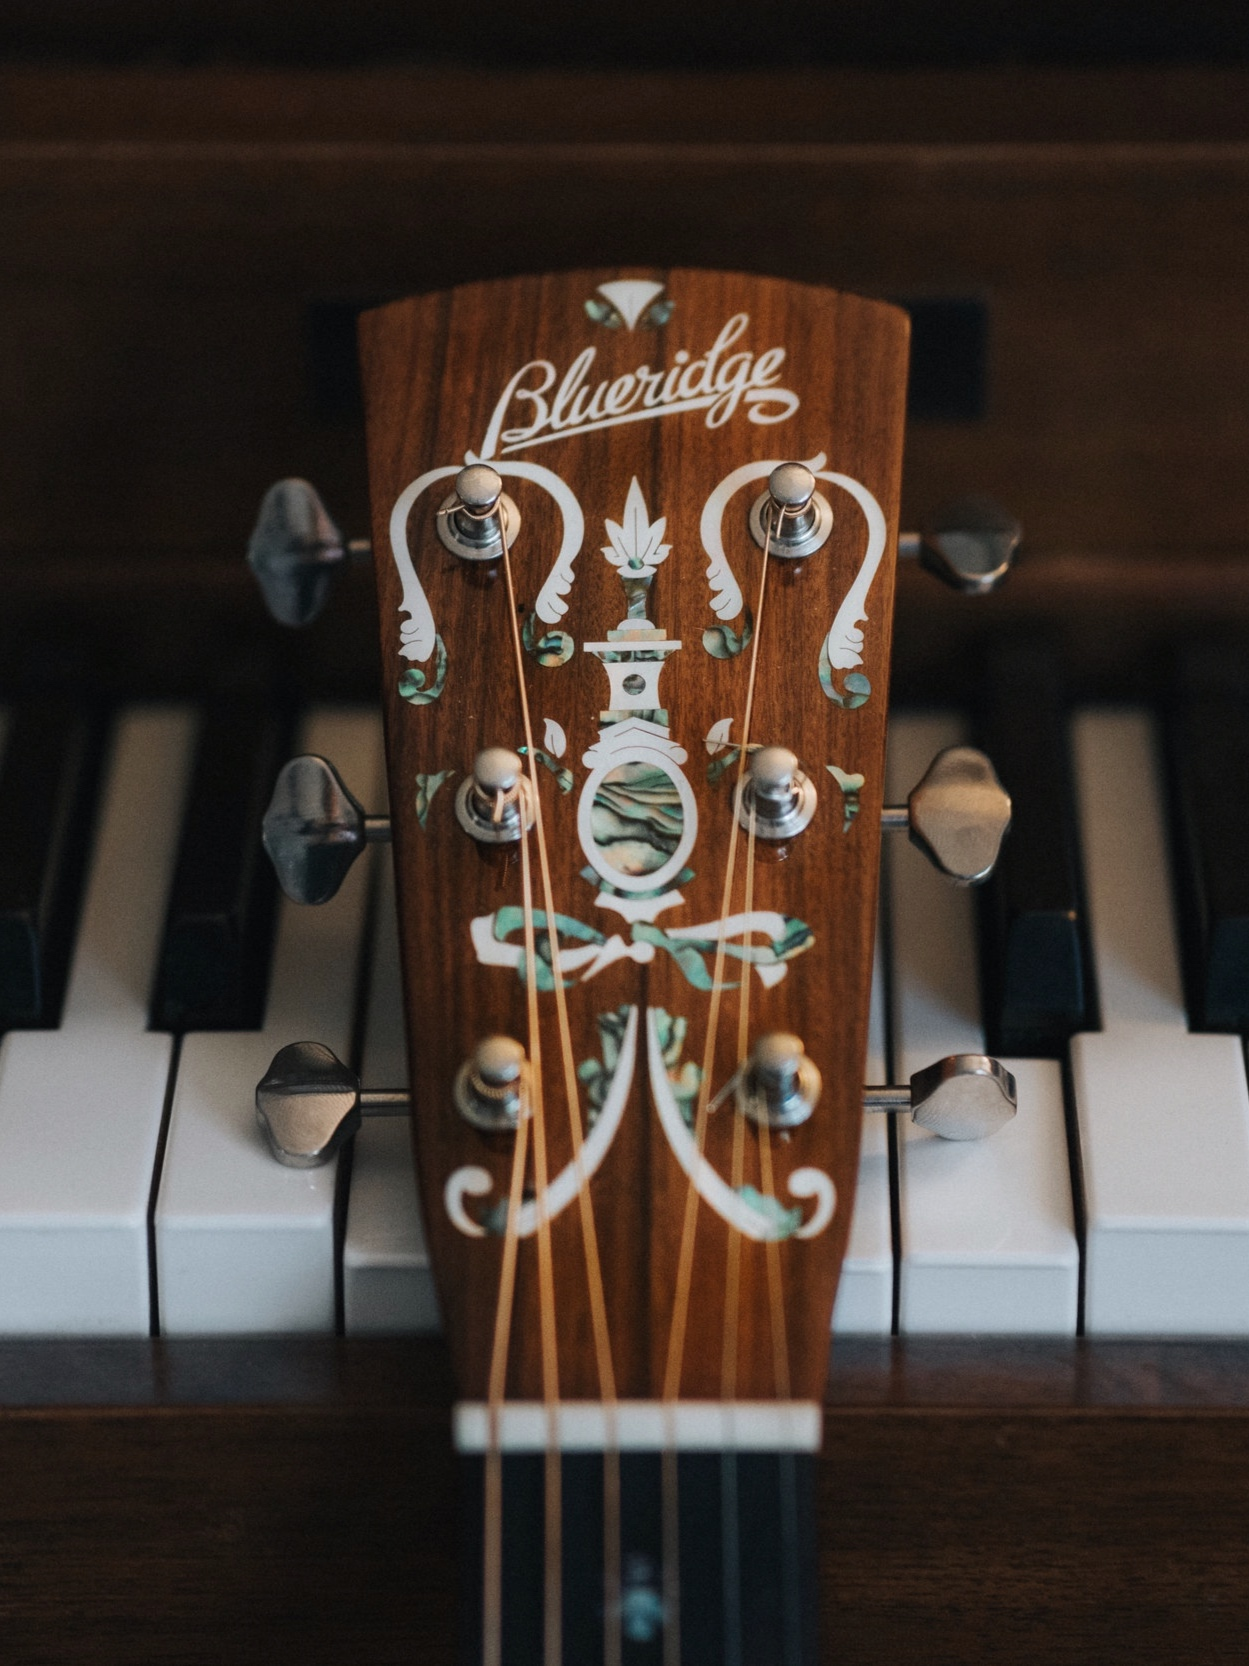 Special instruments - Starting at $99 / SongDoes your song need banjo, fiddle, or pedal steel? We've got you covered! We partner with real Nashville session players to provide you with whatever you need to make your song perfect.